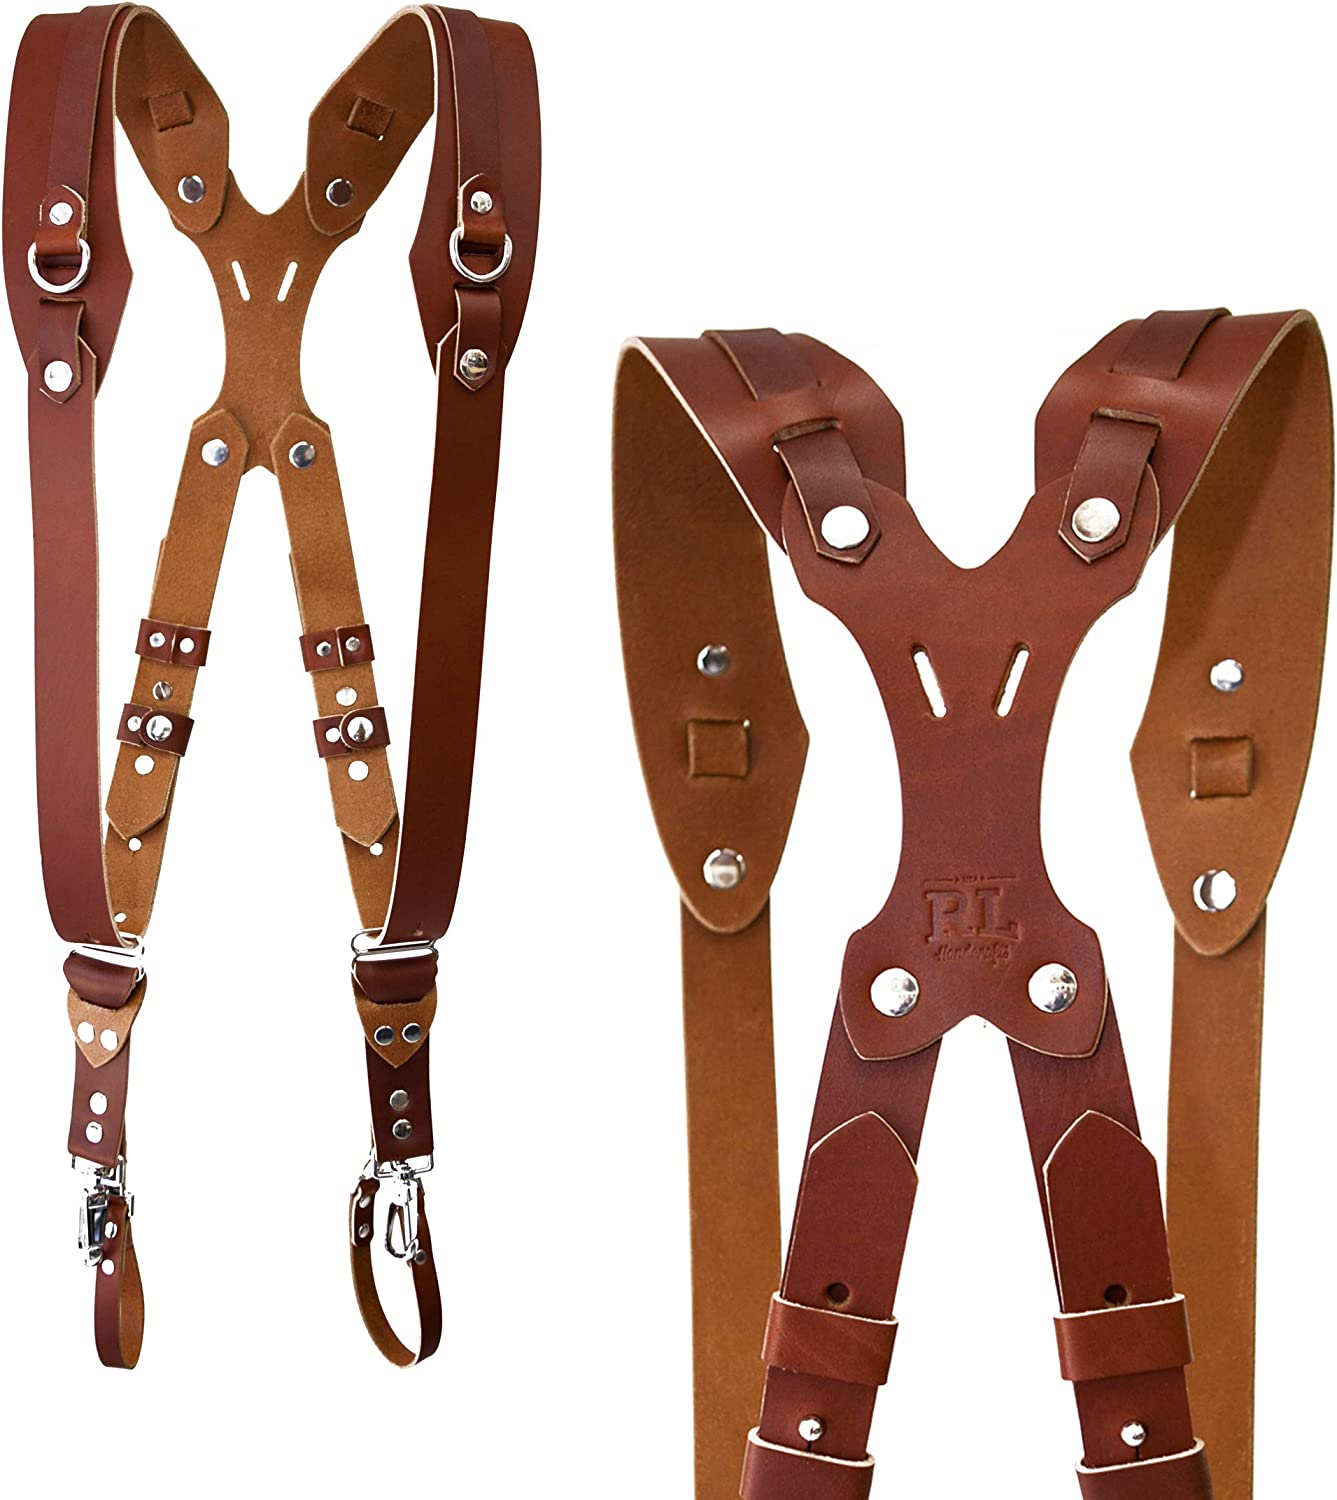 Clydesdale Pro-Dual Handmade Leather Camera Harness Black, X-Large Sling /& Strap RL Handcrafts Point /& Shoot Made in The USA DLSR Mirrorless